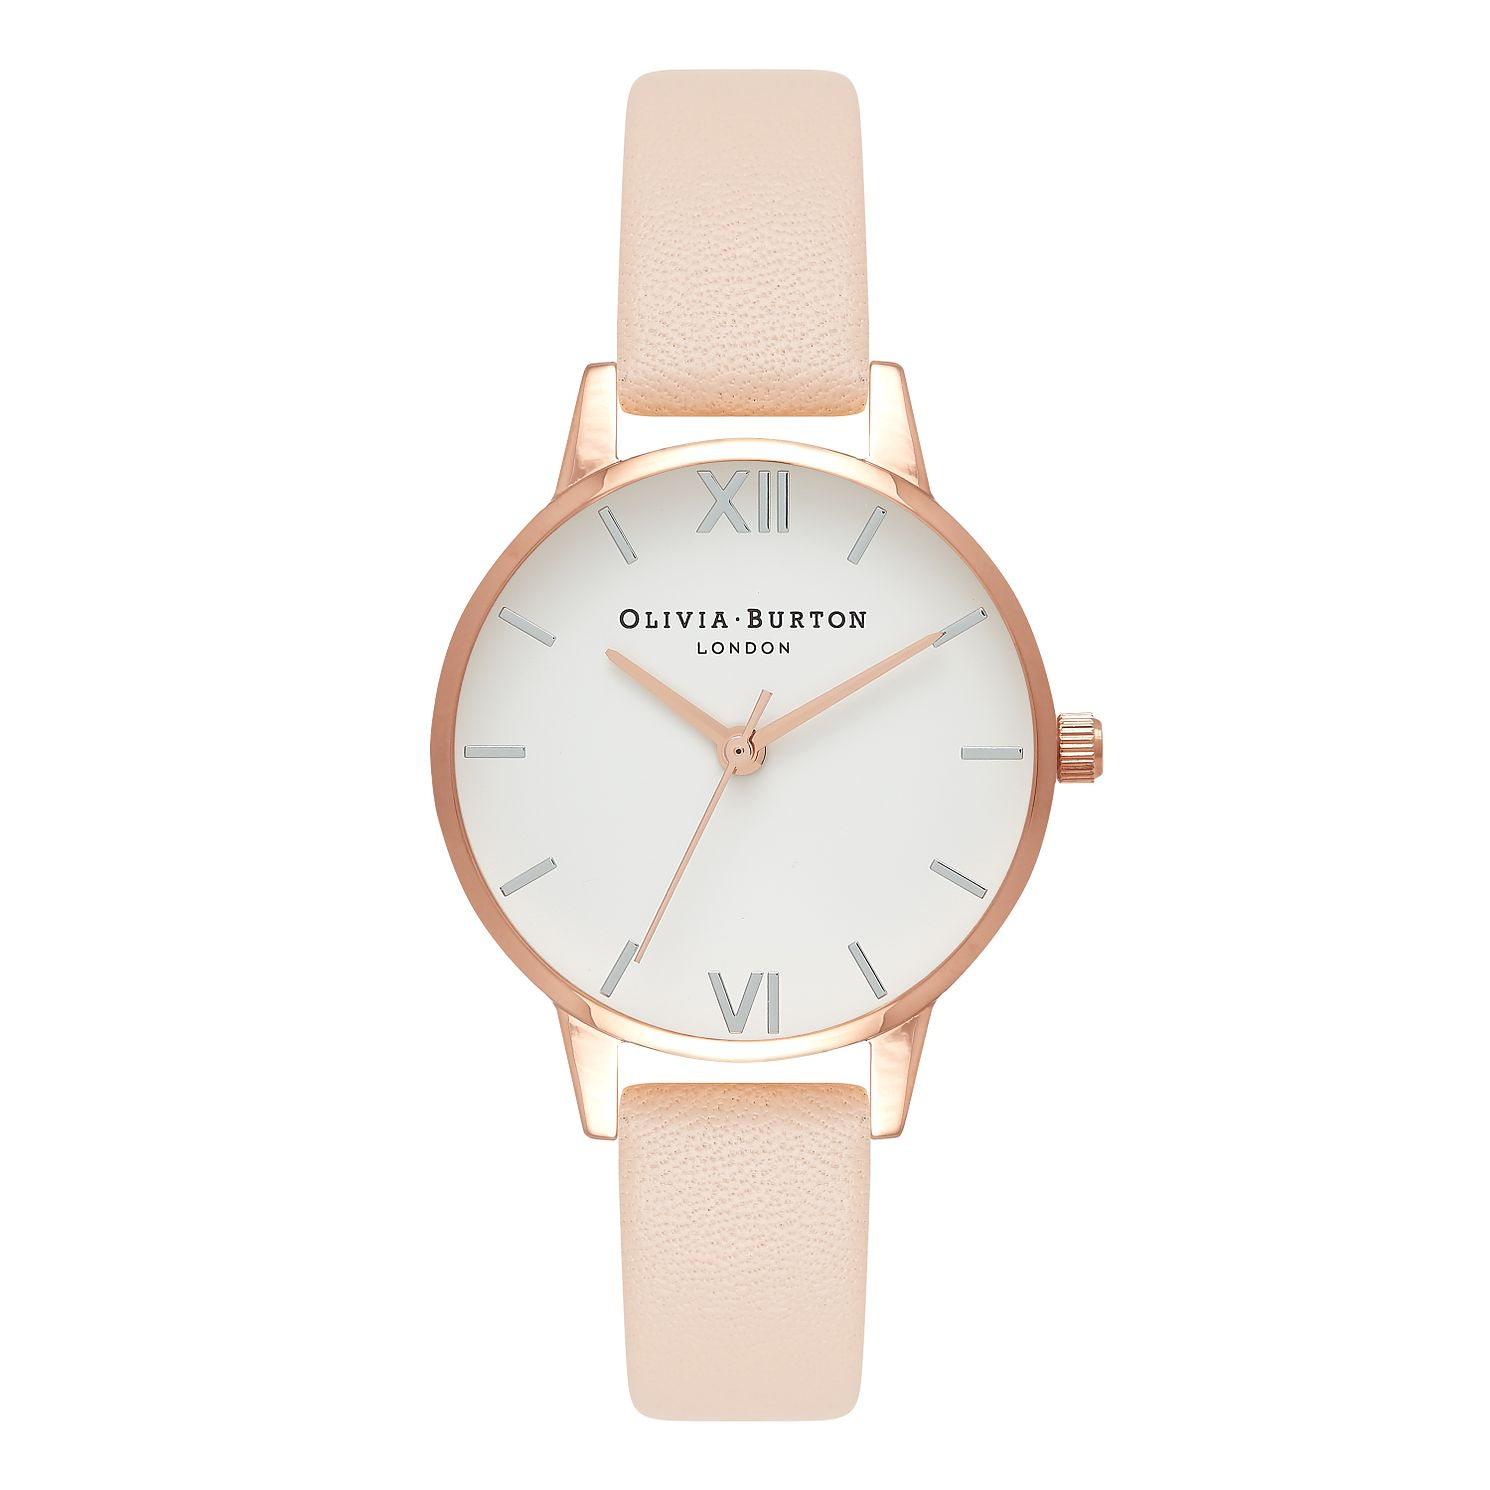 Olivia Burton Pink Leather Strap Watch & Bracelet Set - Product number 5912237